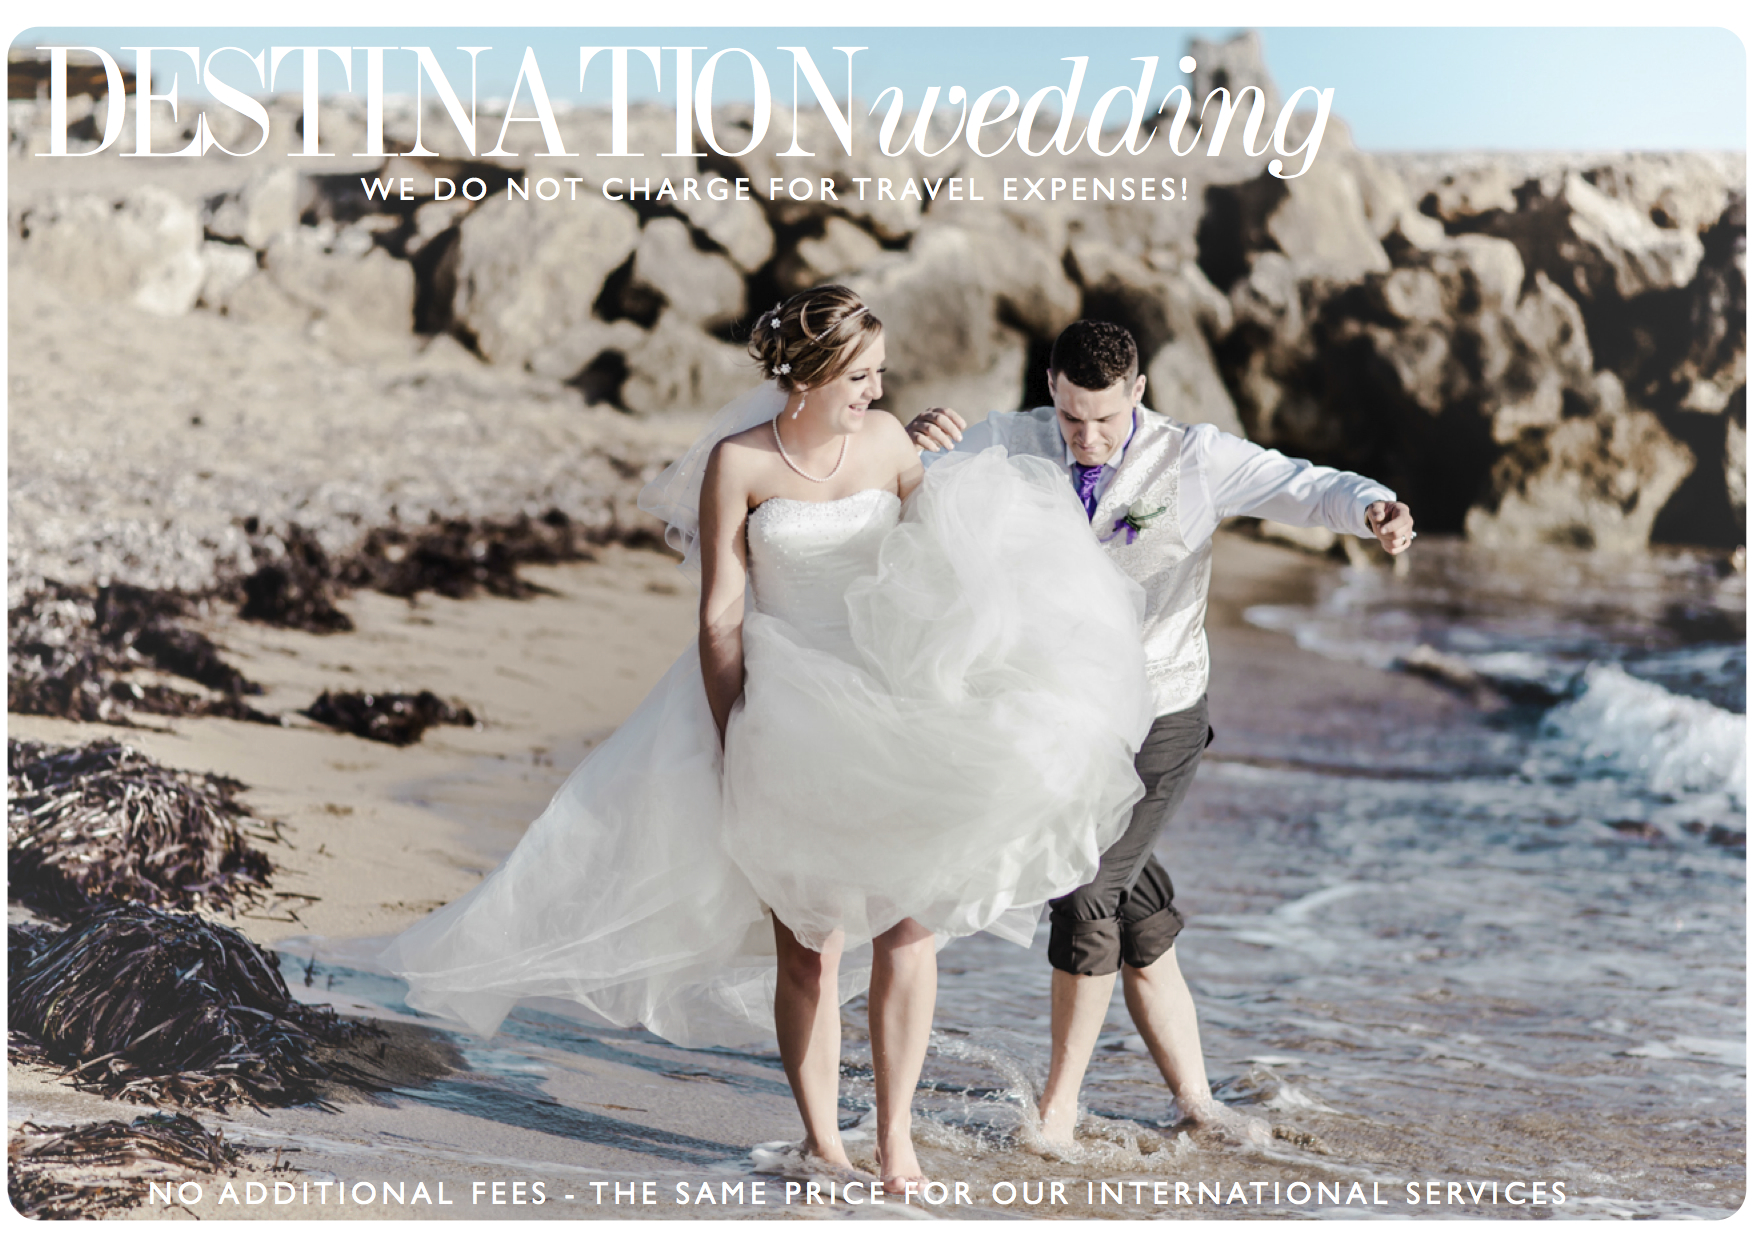 Destination Weddings - No additional fees! MP travels throughout the world. Click the image above to view his featured clients.